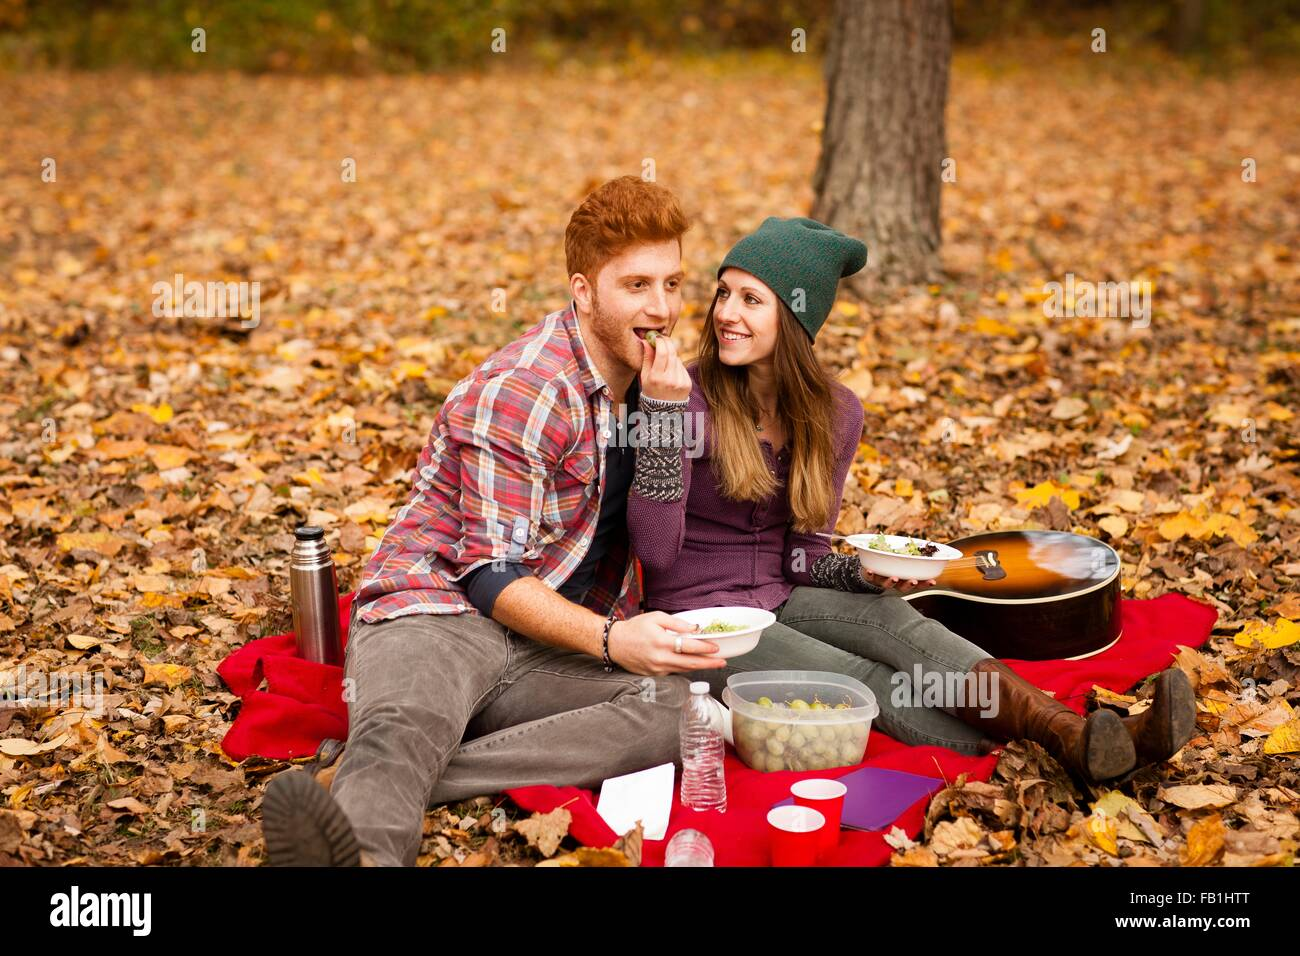 Young couple having picnic in autumn forest Stock Photo